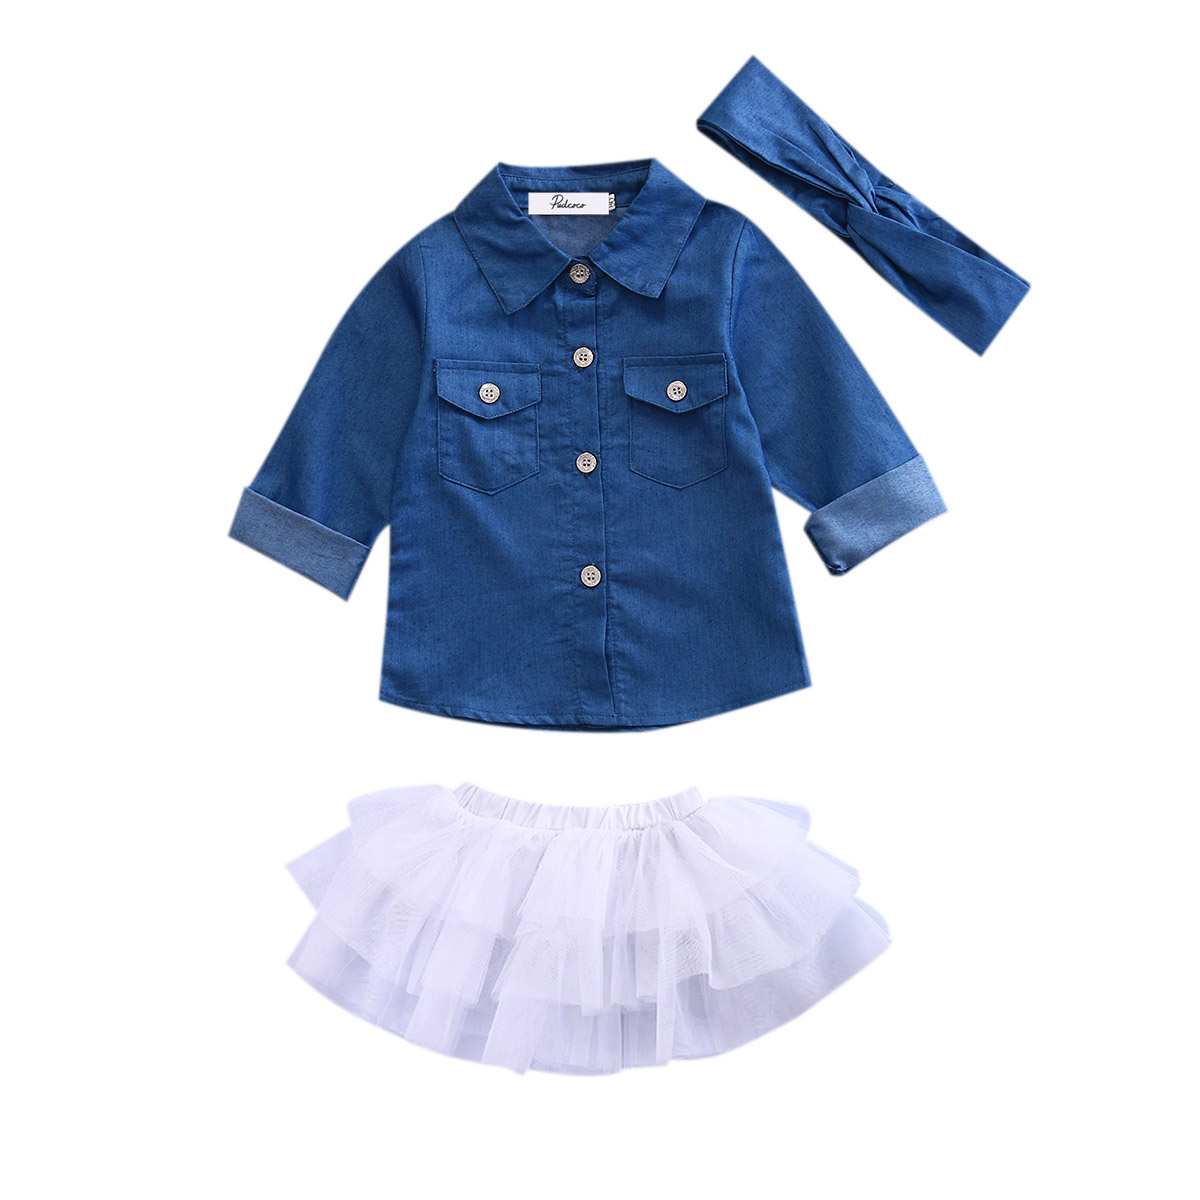 3PCS Toddled Kids Baby Girl Denim Long Sleeve Button Tops Shirt Tutu Skirts Dress Outfits Set 0-4T 2018 New